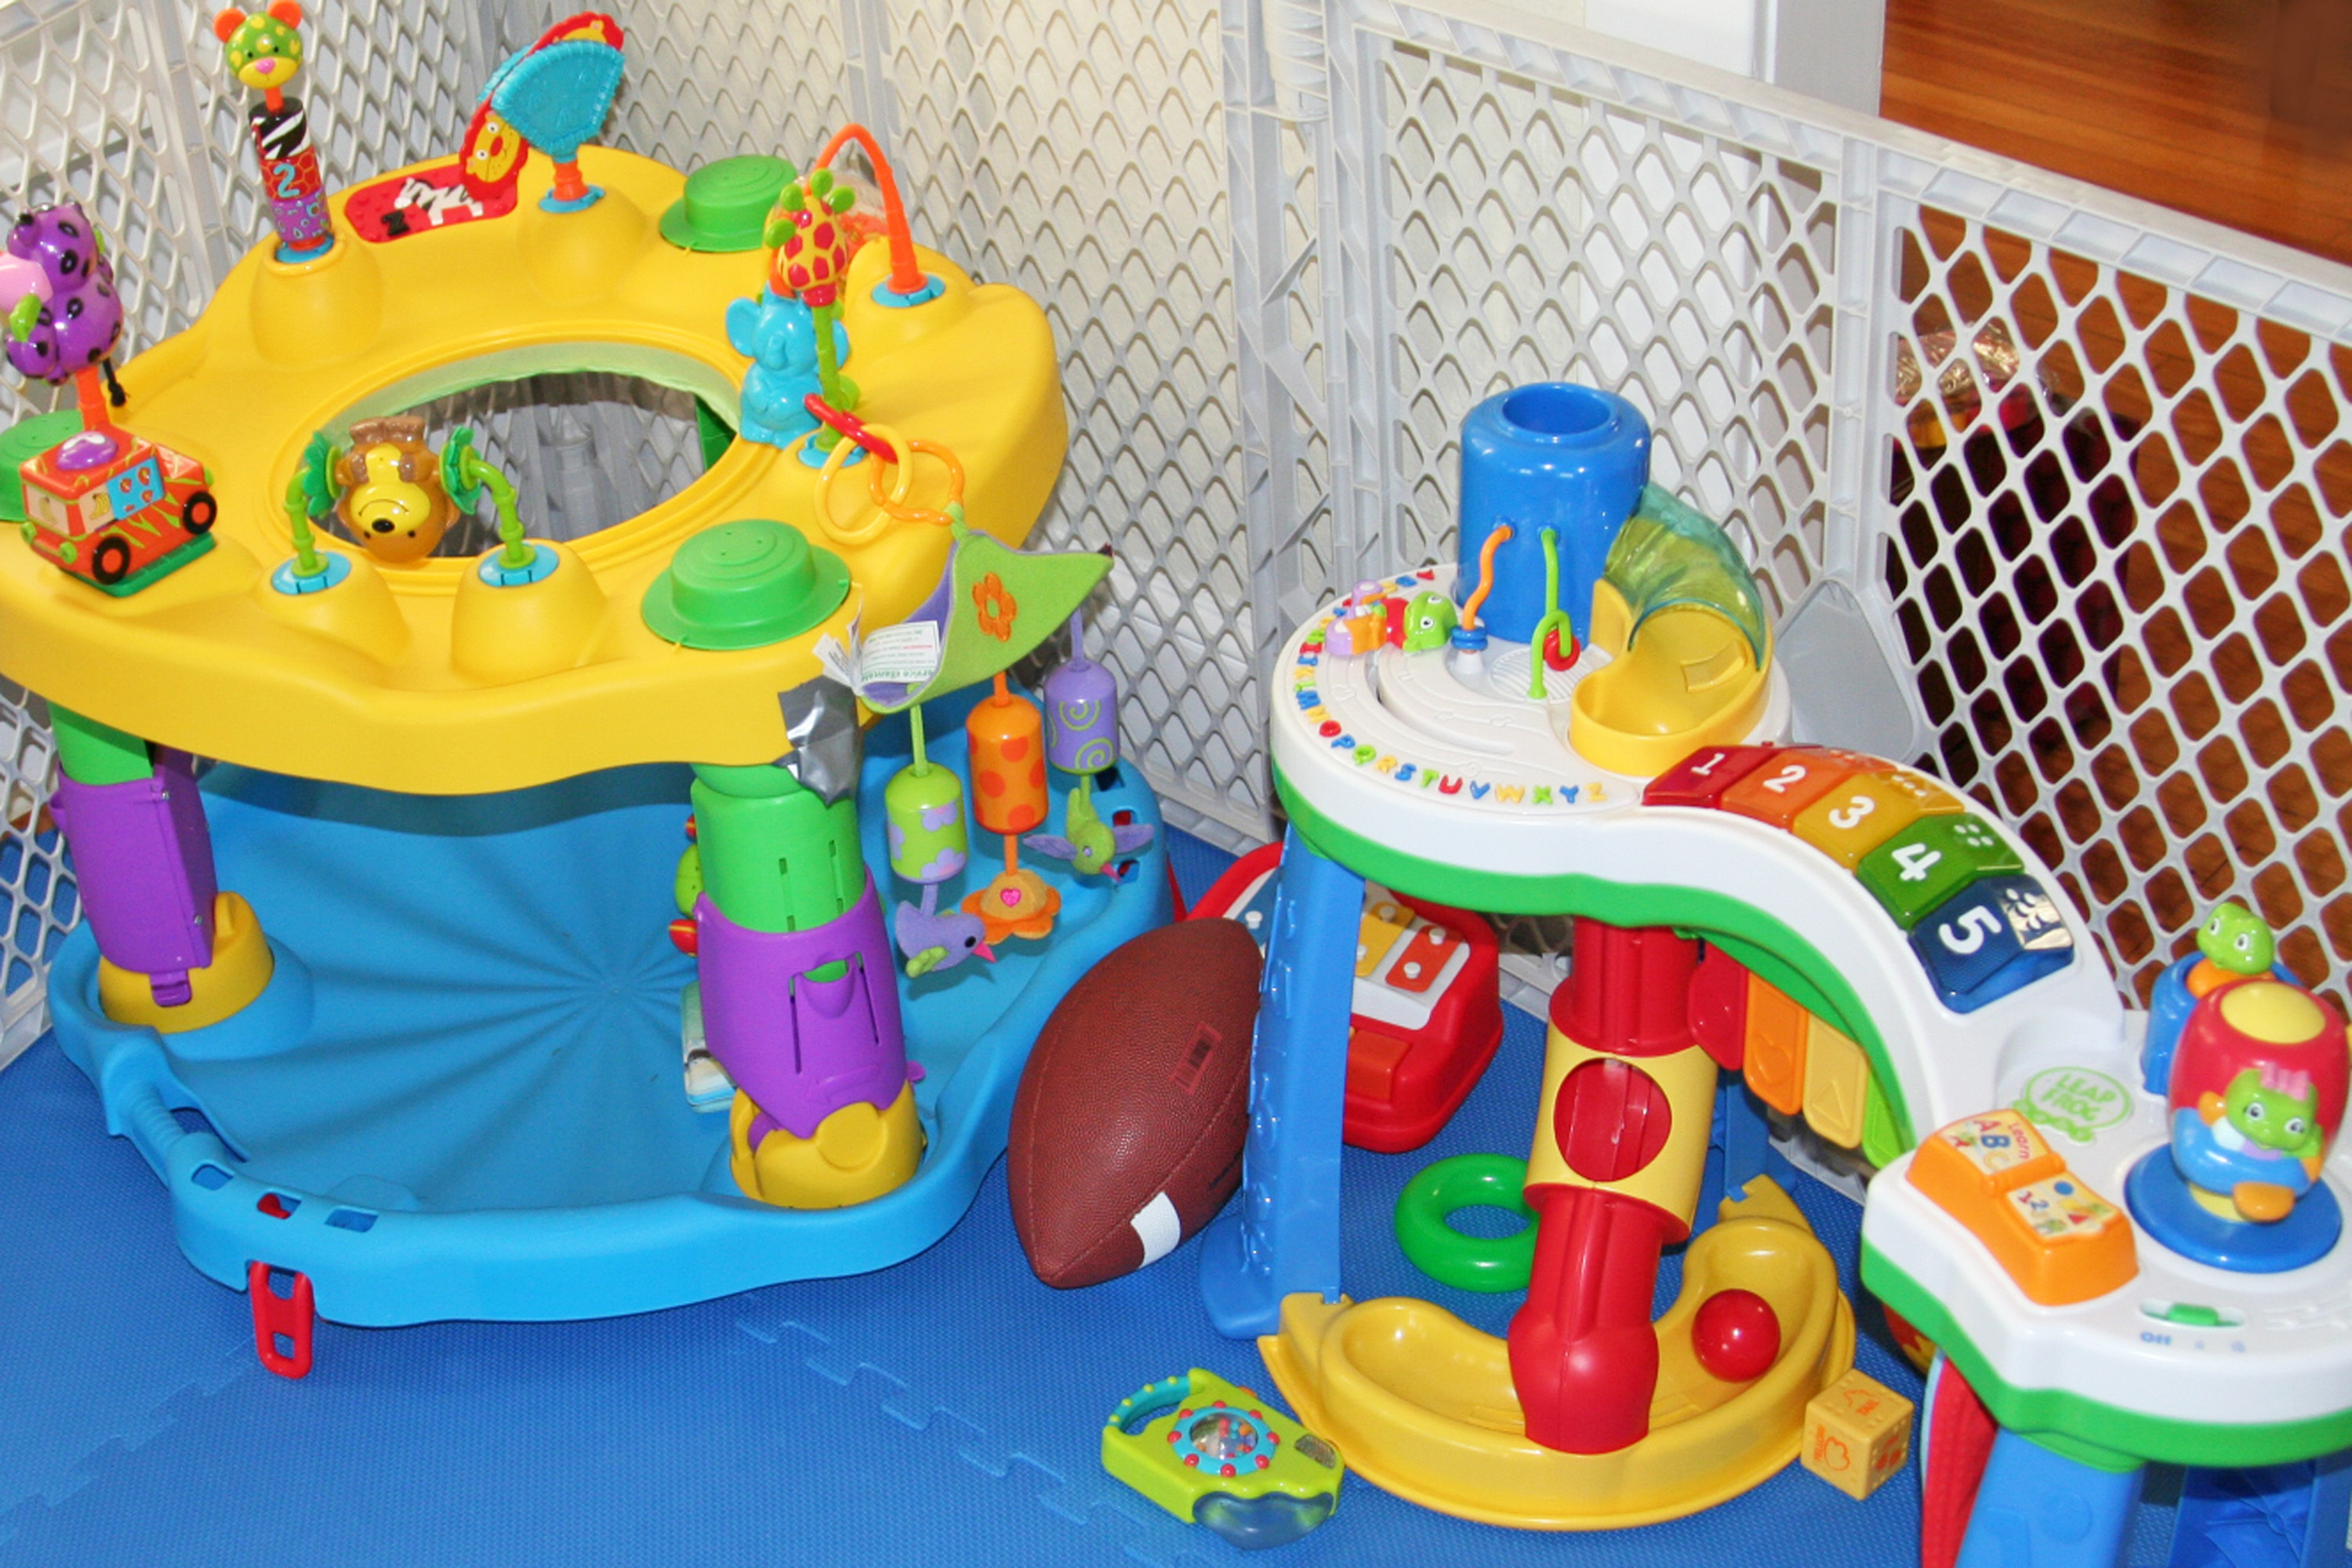 The Best Toys For 9 Month Olds Healthfully - 9-month-old-baby-toys